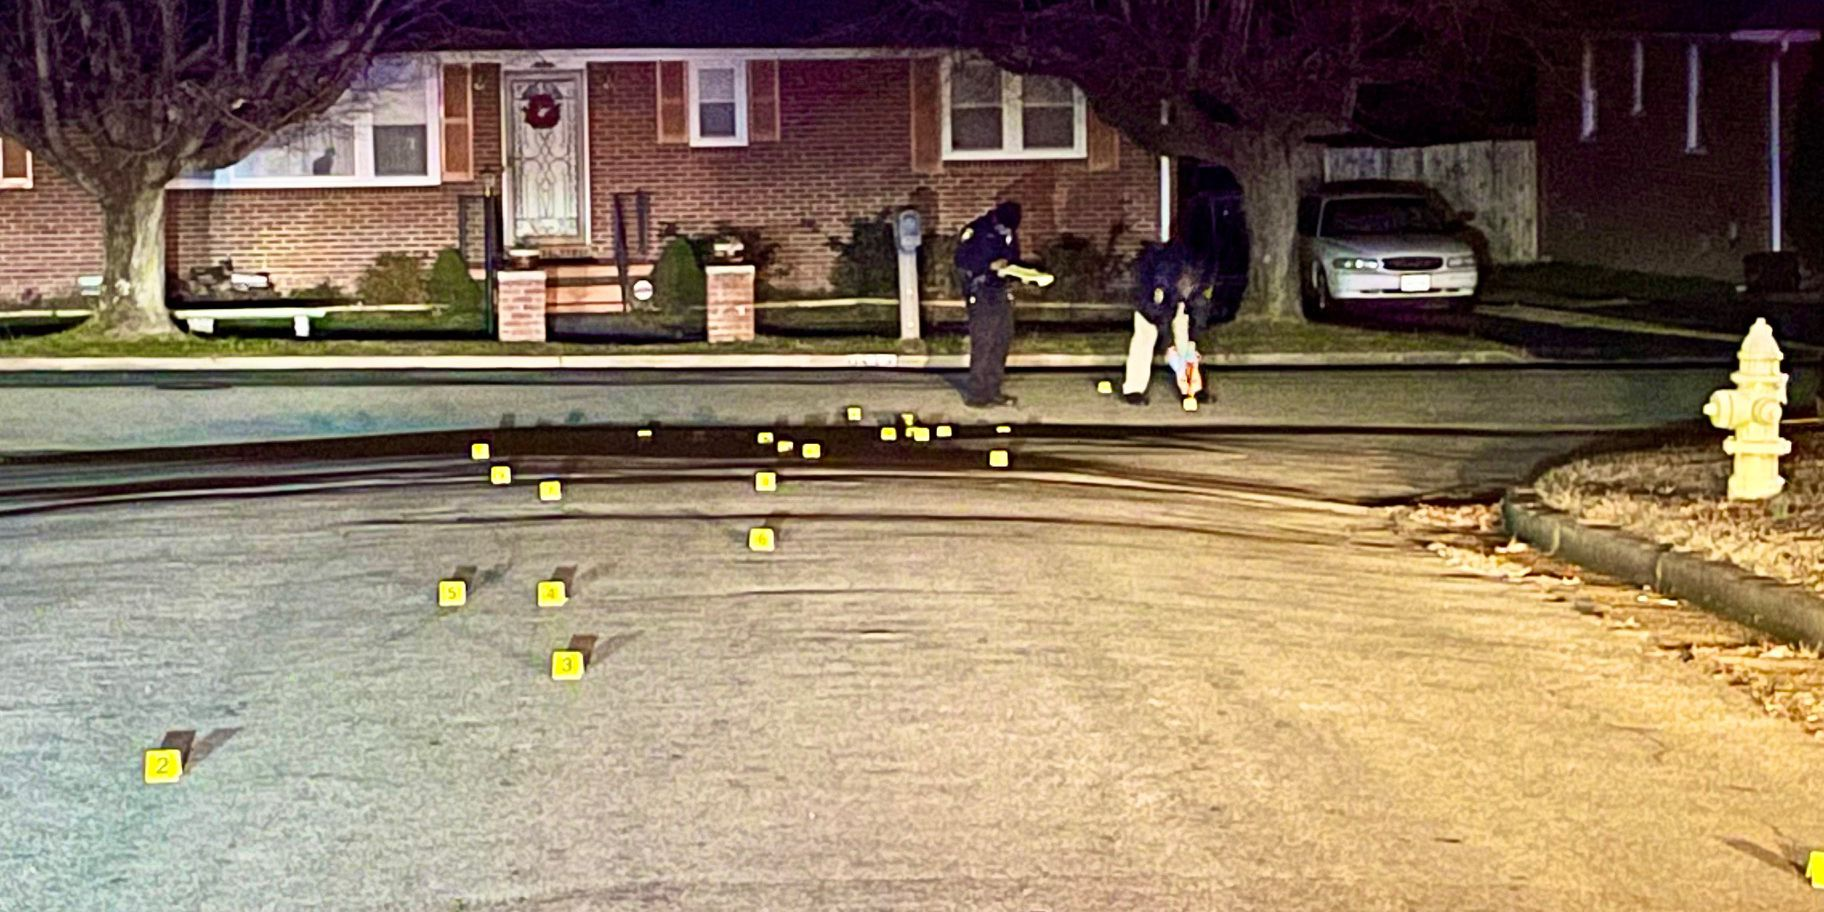 Shots fired in Petersburg, nearly 30 shell casings found